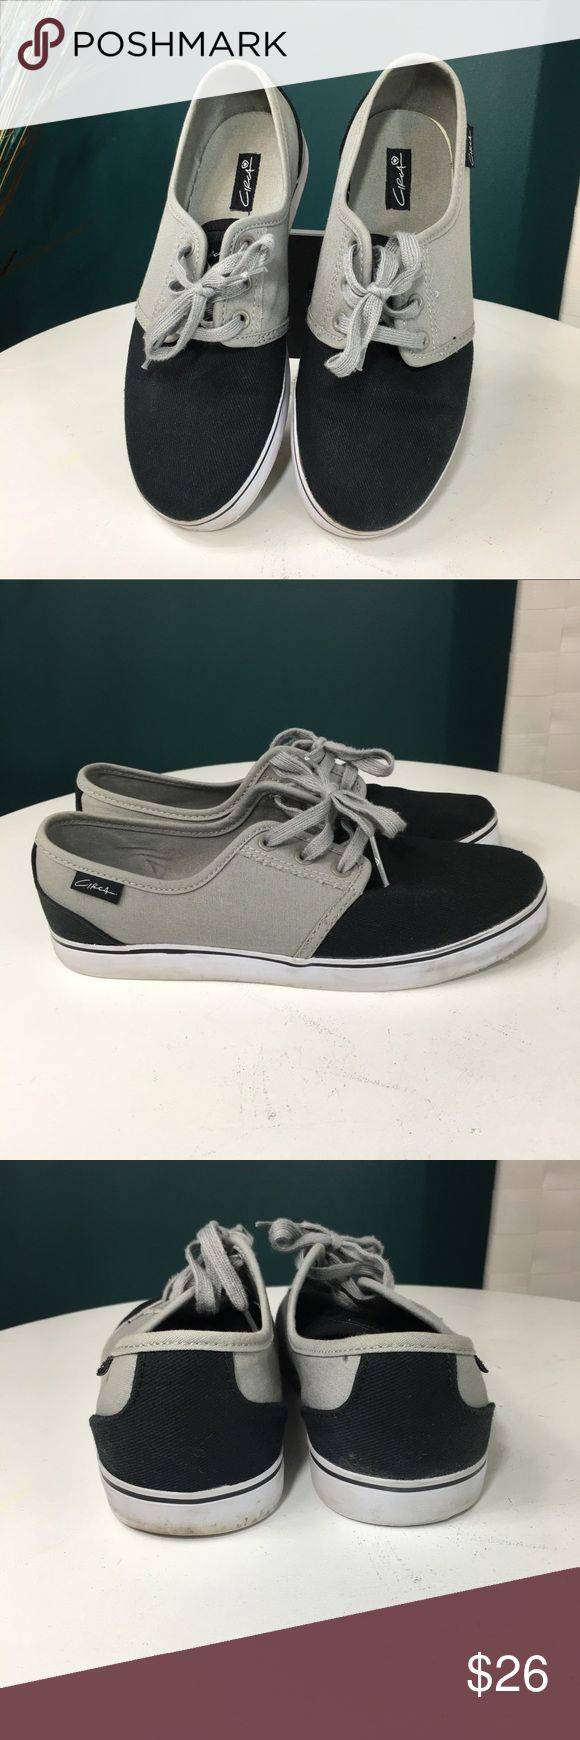 Men's Circa Crip Style Sneakers Black and gray size 8 sneakers in good preloved condition. Circa Shoes Sneakers